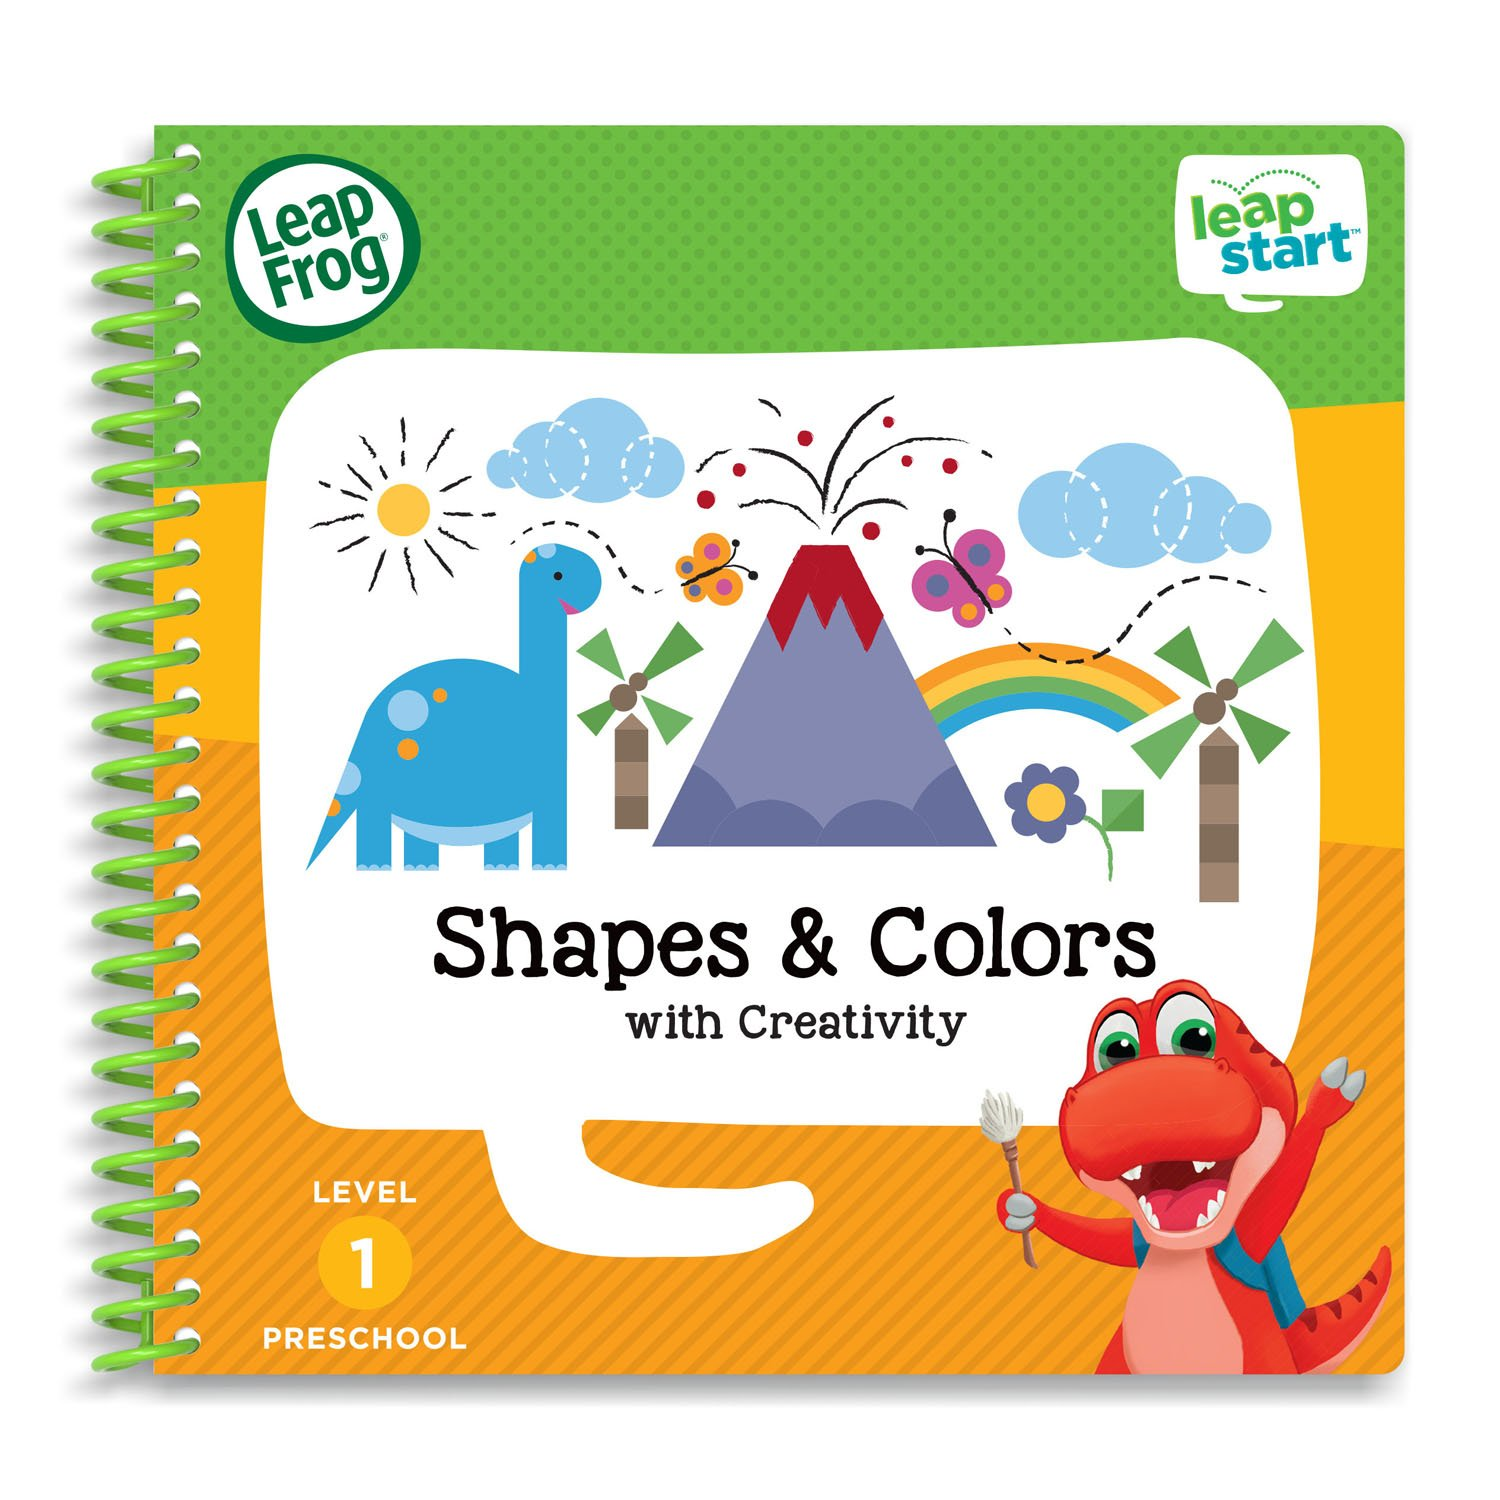 amazoncom leapfrog leapstart level 1 preschool activity book bundle with alphabet adventures shapes and colors toys games - Preschool Books About Colors